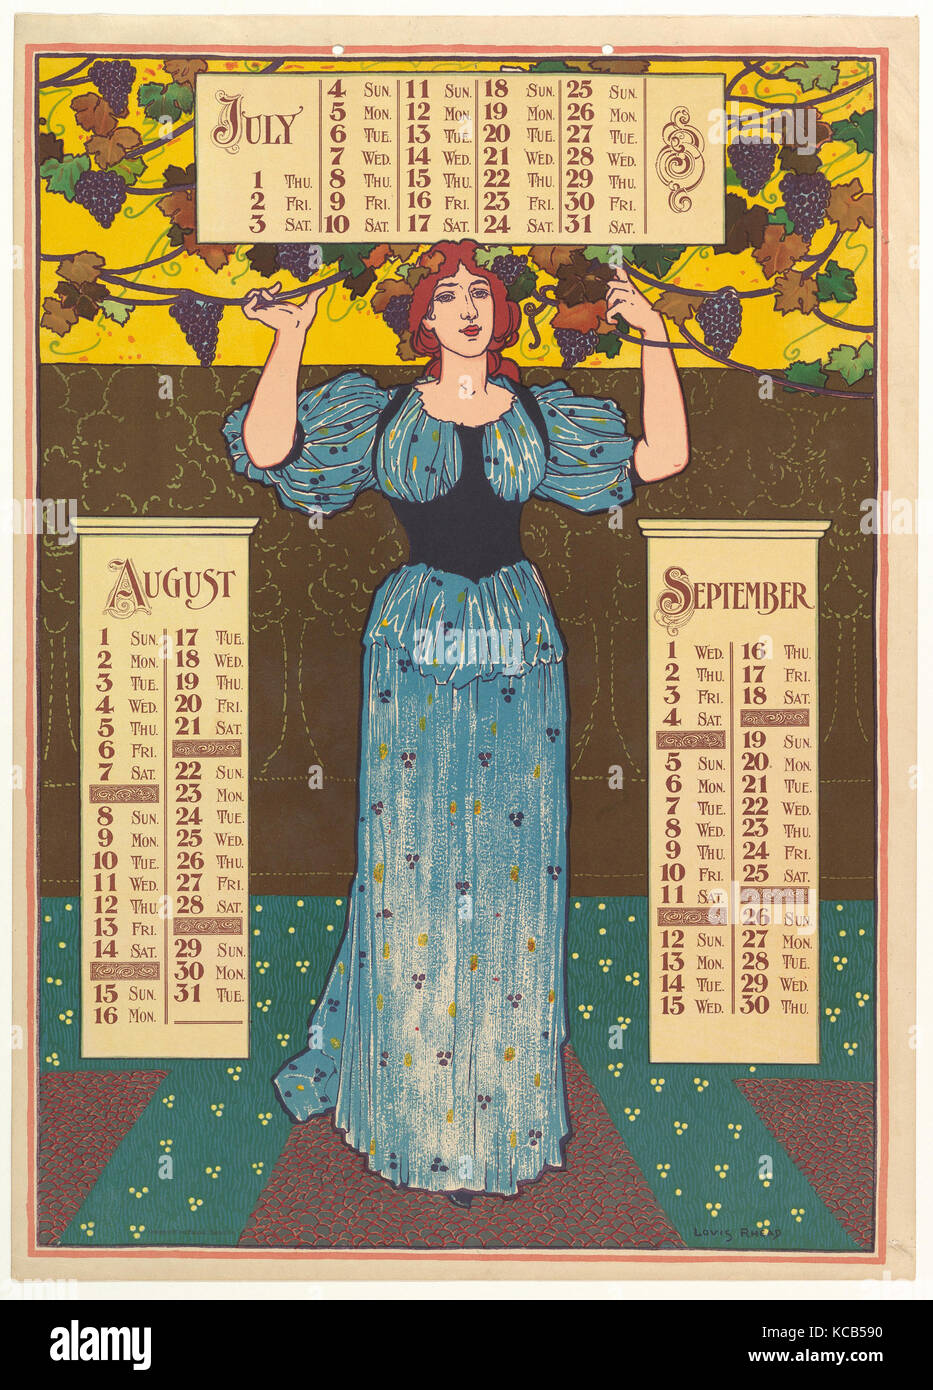 July, August, September, 1896, Lithograph, Sheet: 19 3/16 × 13 3/4 in. (48.8 × 35 cm), Louis John Rhead - Stock Image